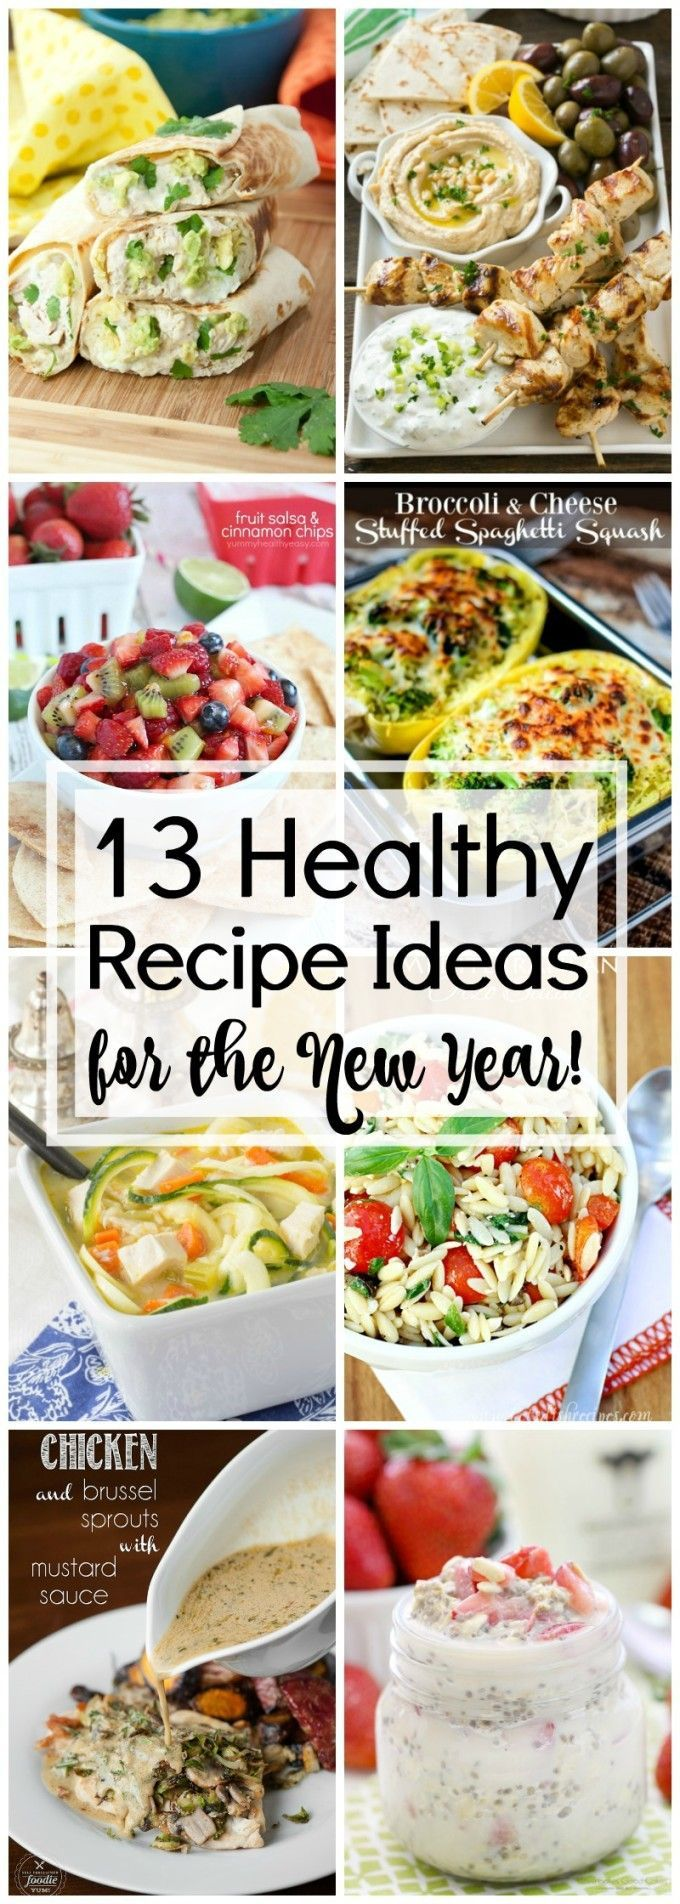 13 Healthy Recipe Ideas for the New Year - 13 amazing recipes to keep you on track!